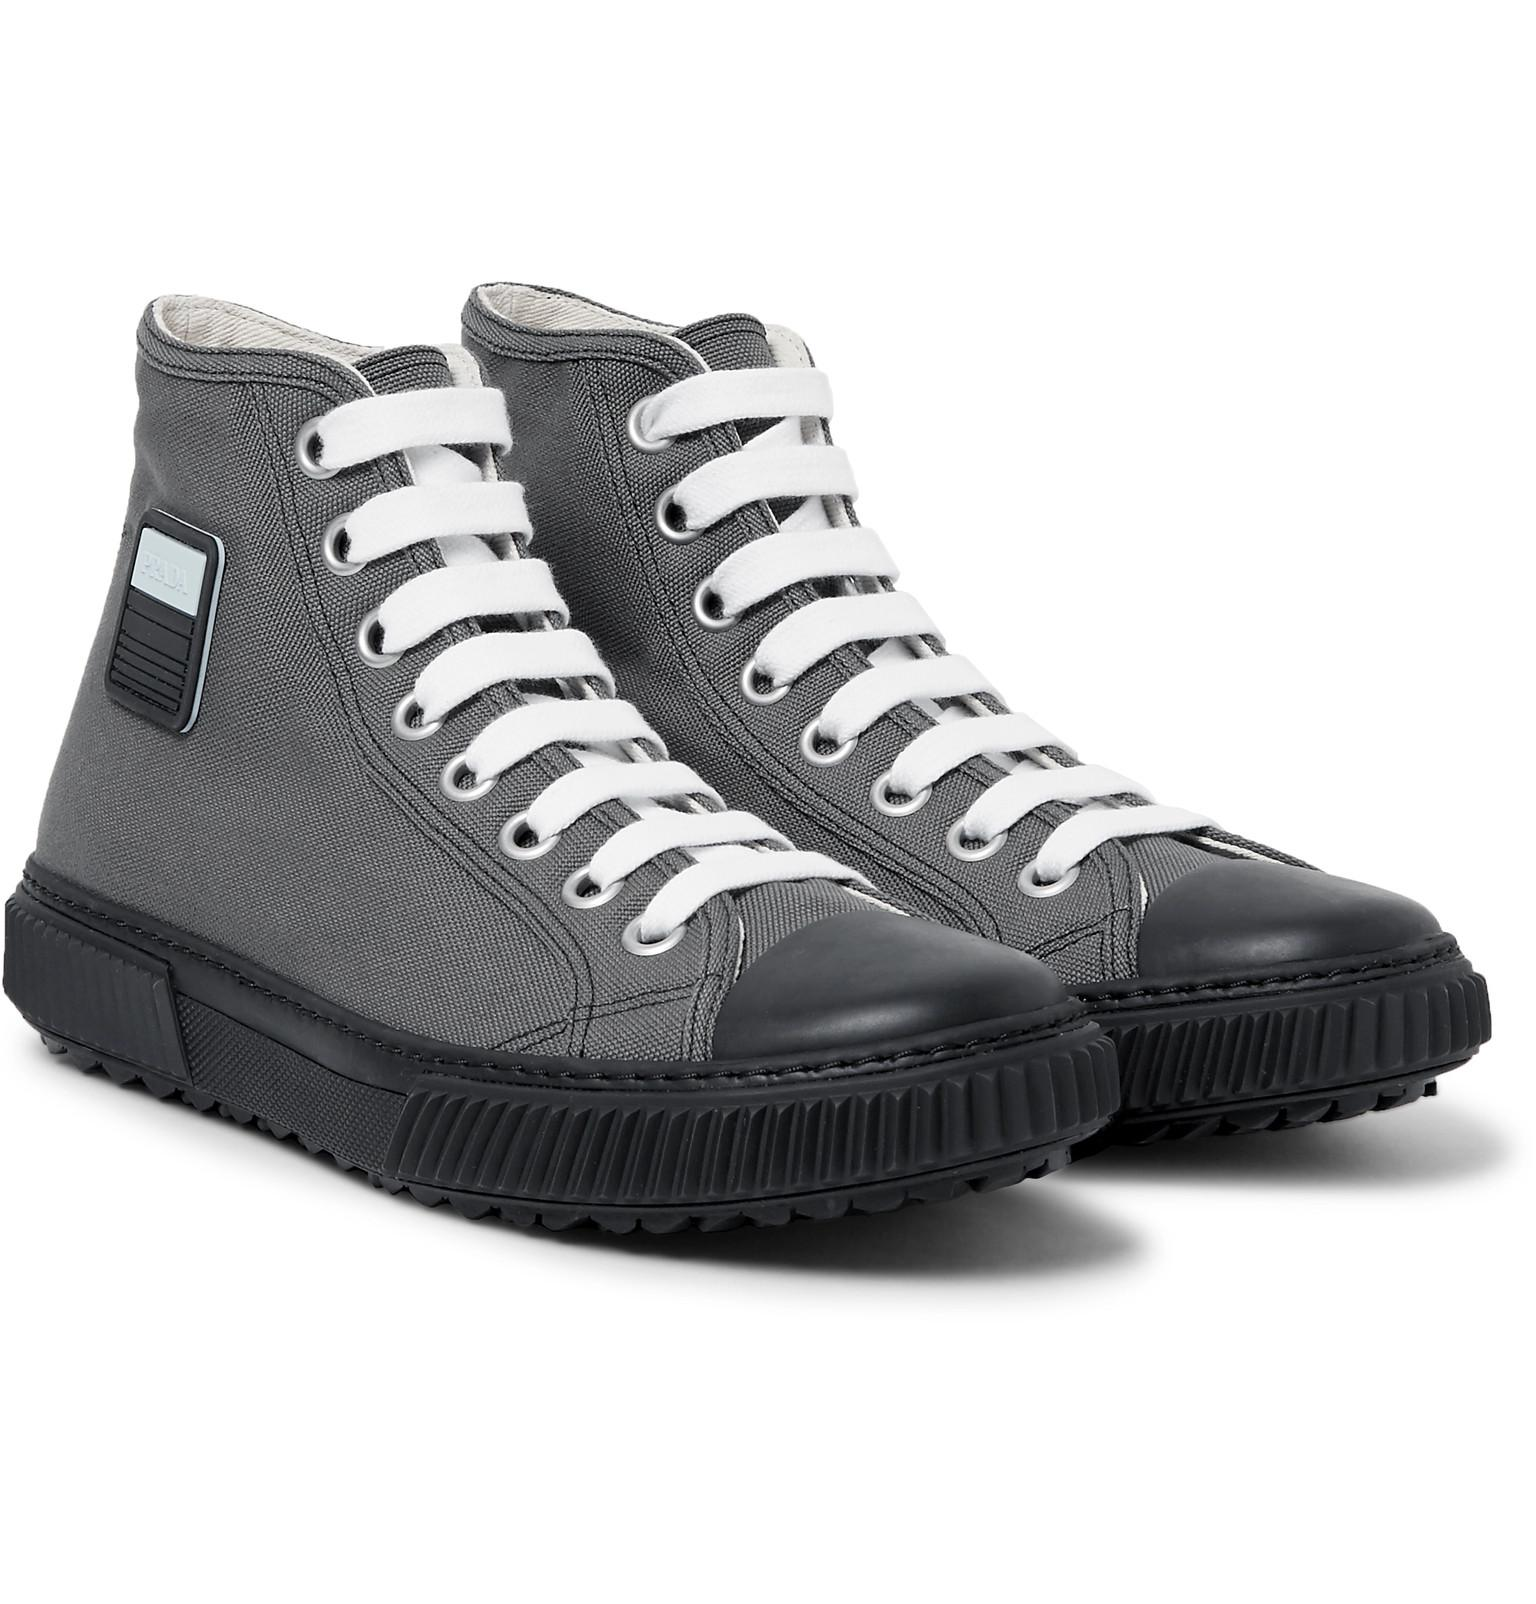 94a34c9a9e86 ... czech lyst prada stratos canvas high top sneakers in gray for men 033d0  56dd2